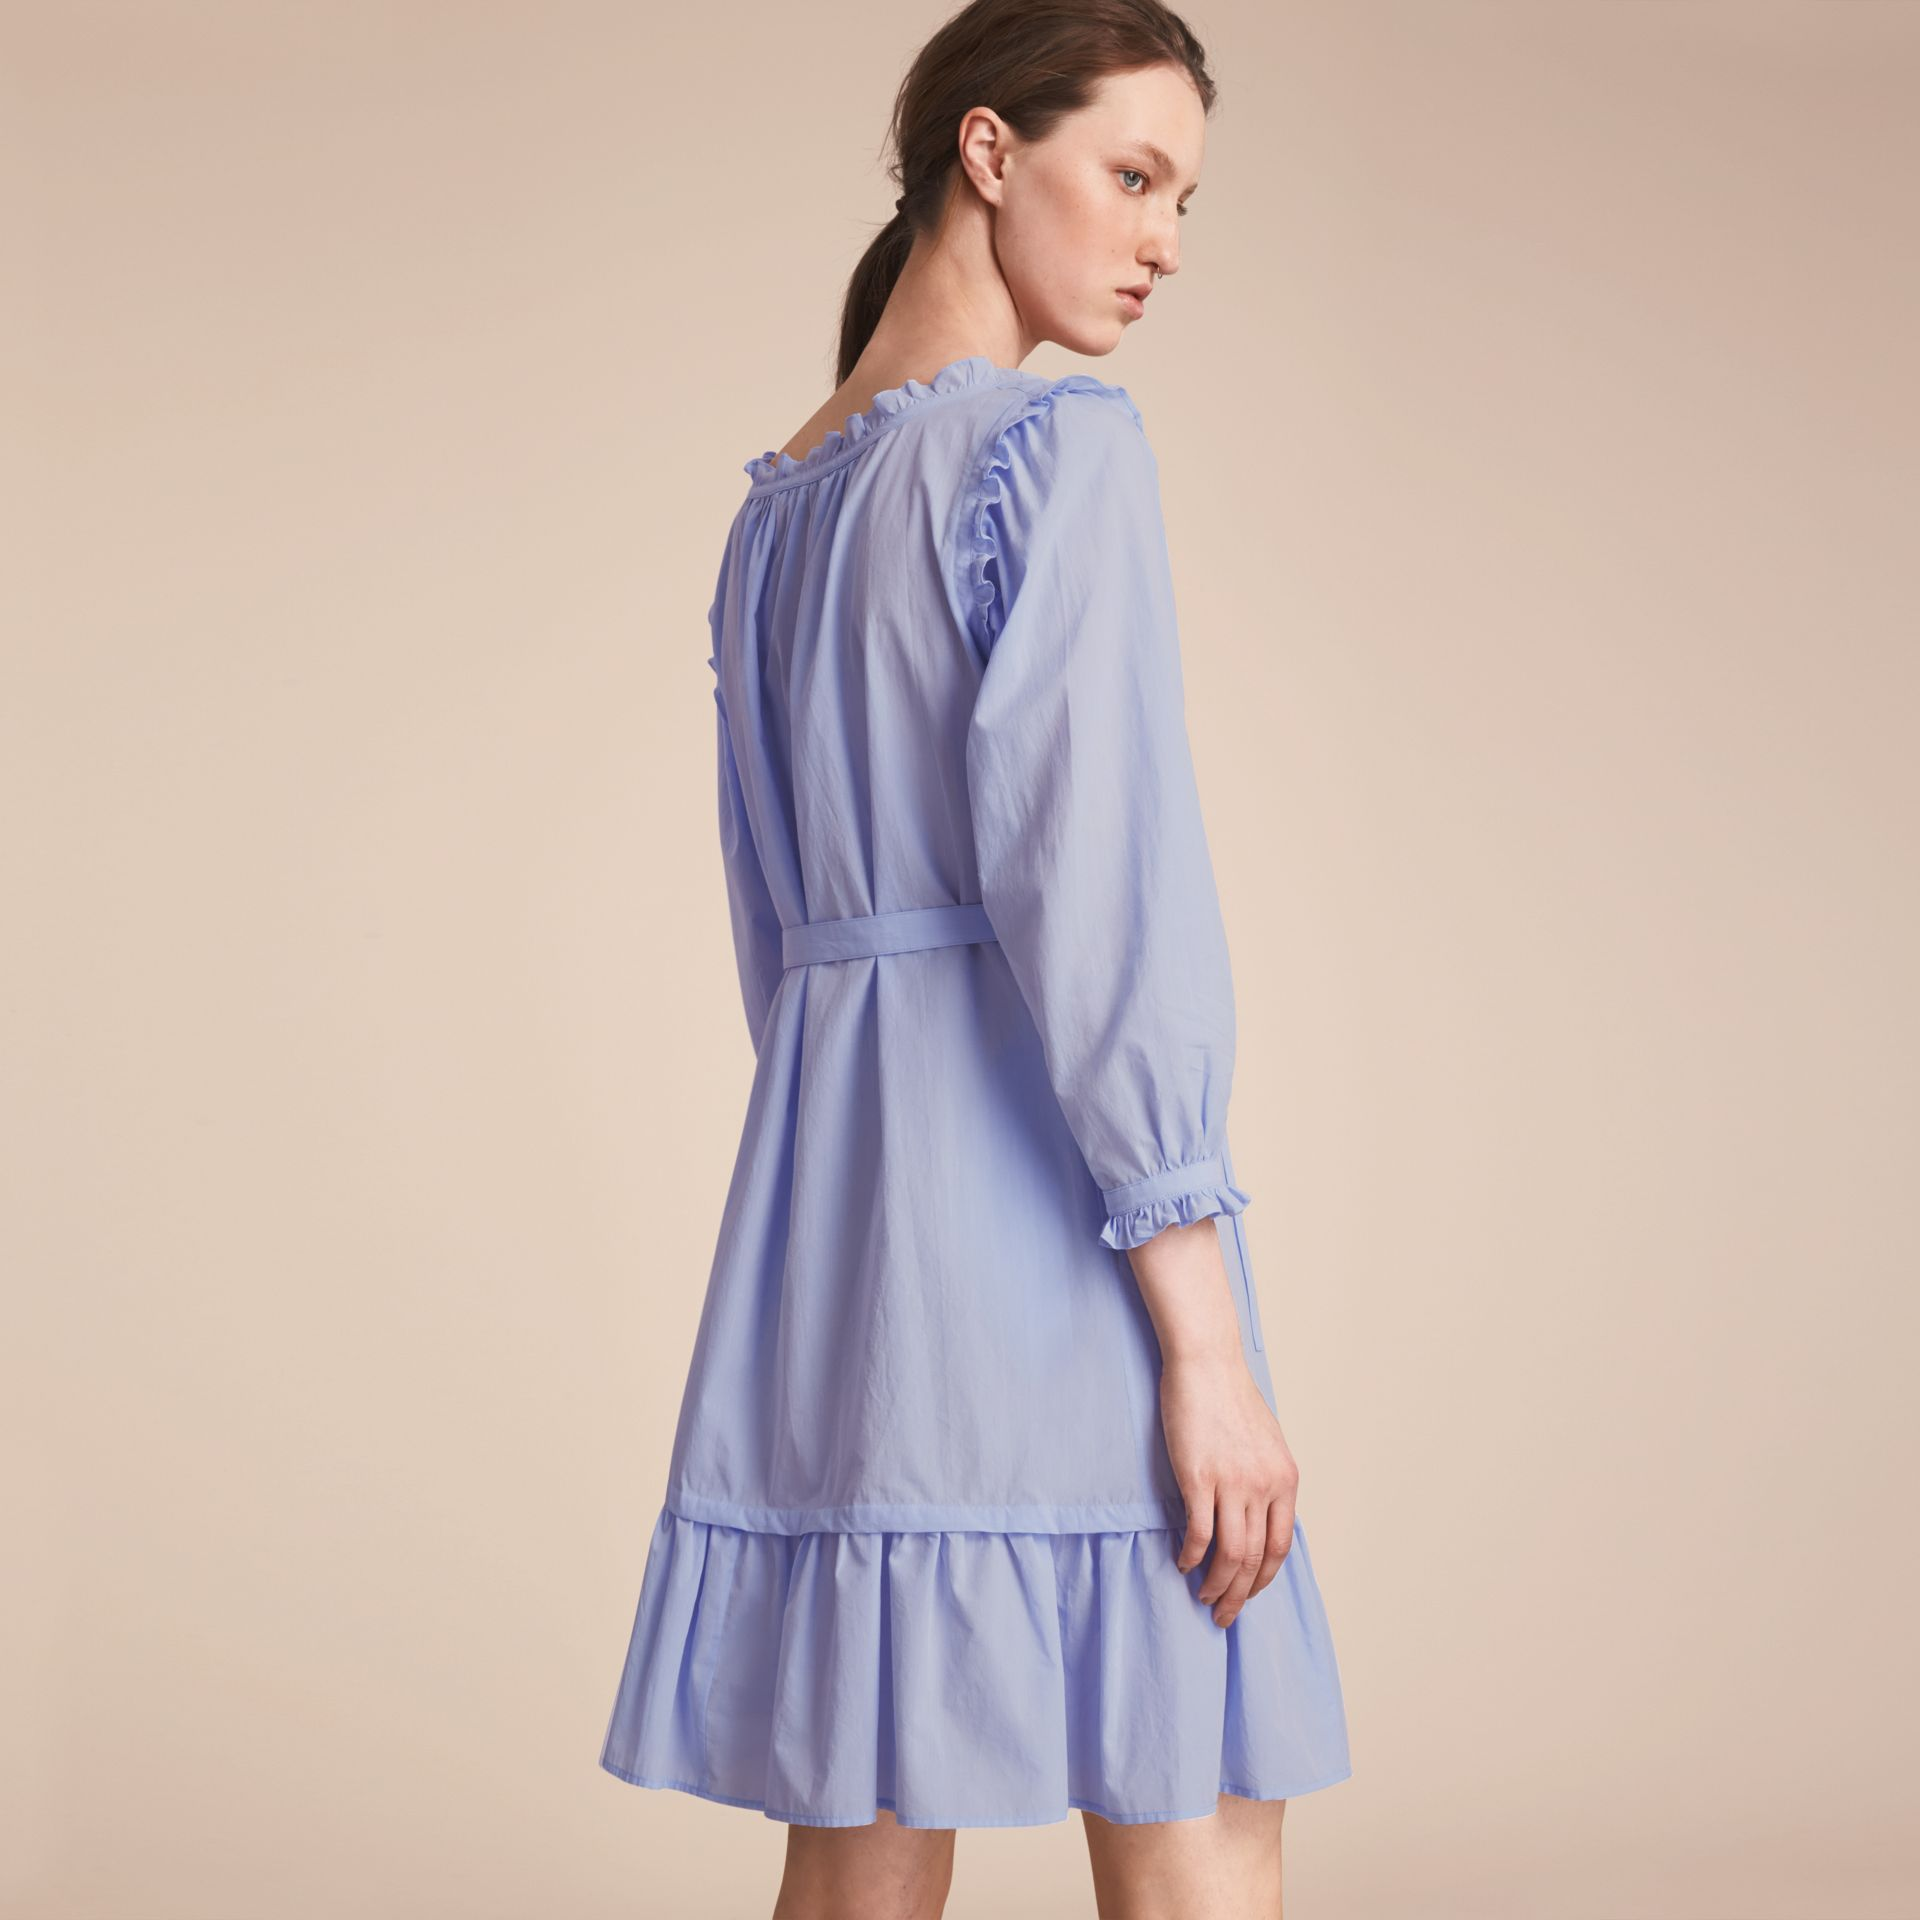 Ruffle and Pintuck Detail Cotton Dress - Women | Burberry Australia - gallery image 3